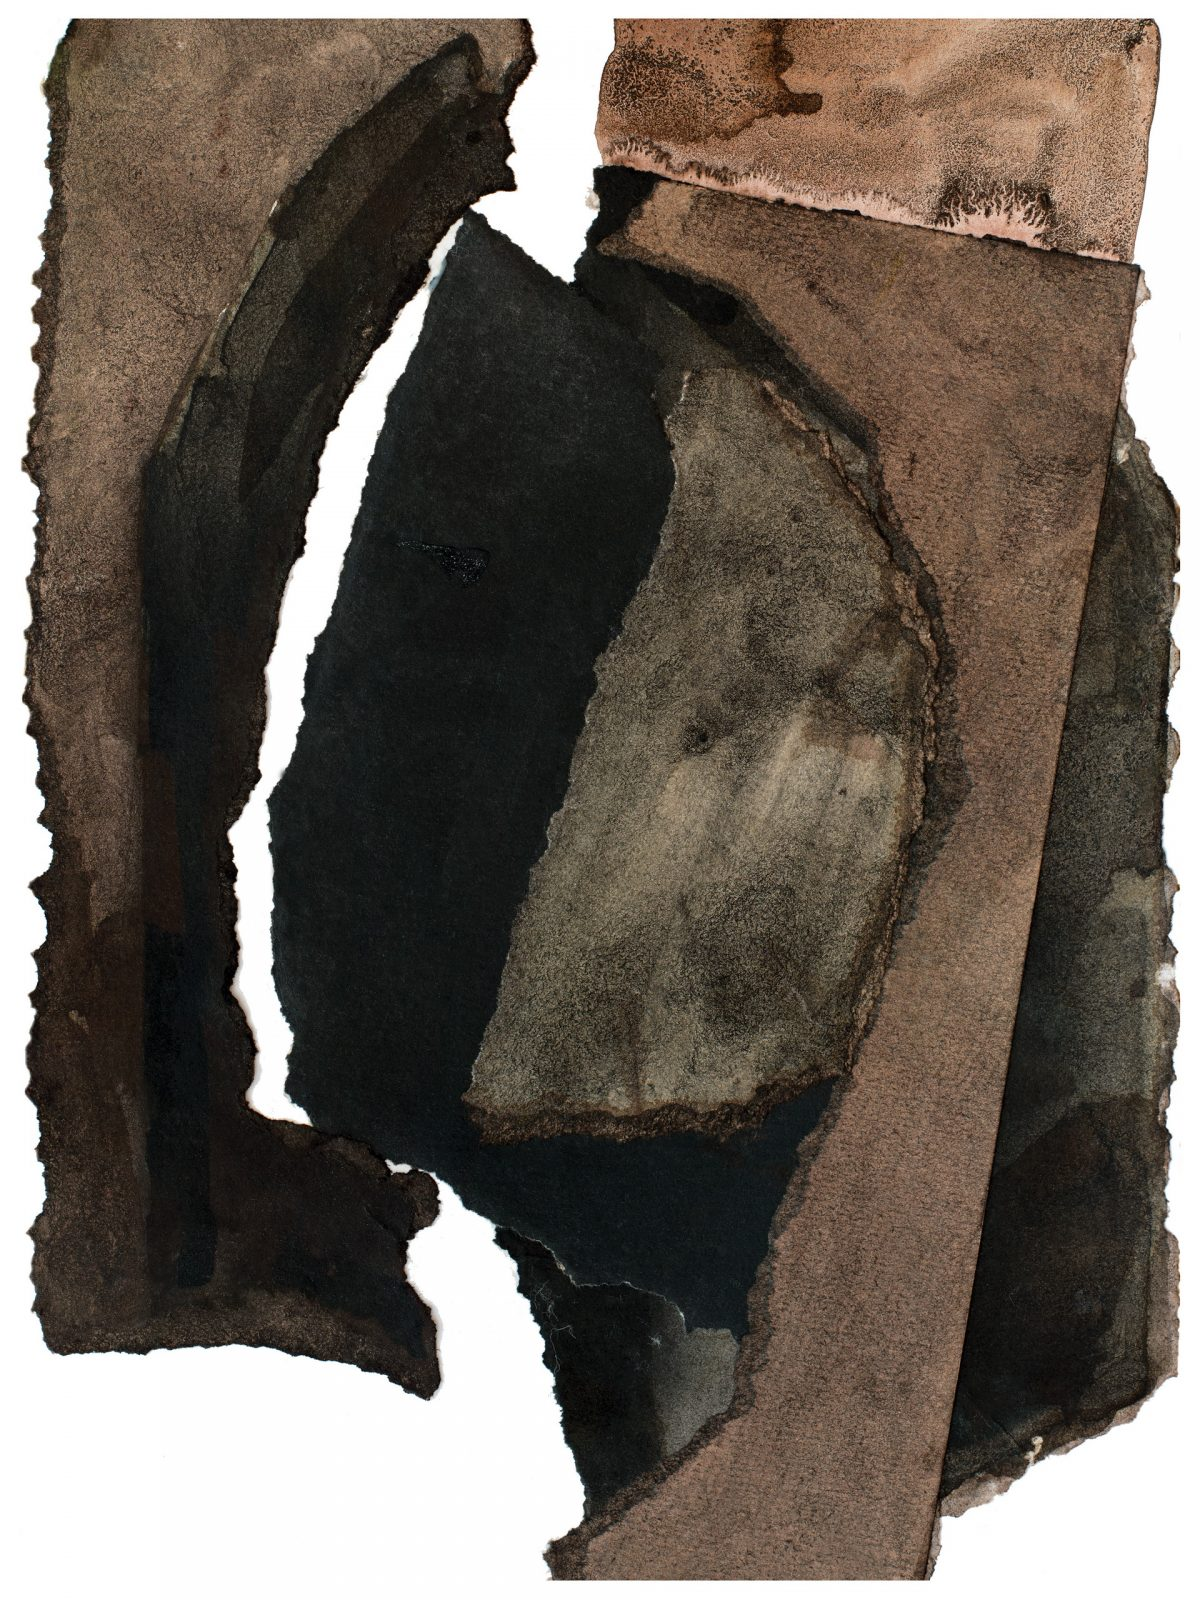 A portrait collage in brown and black